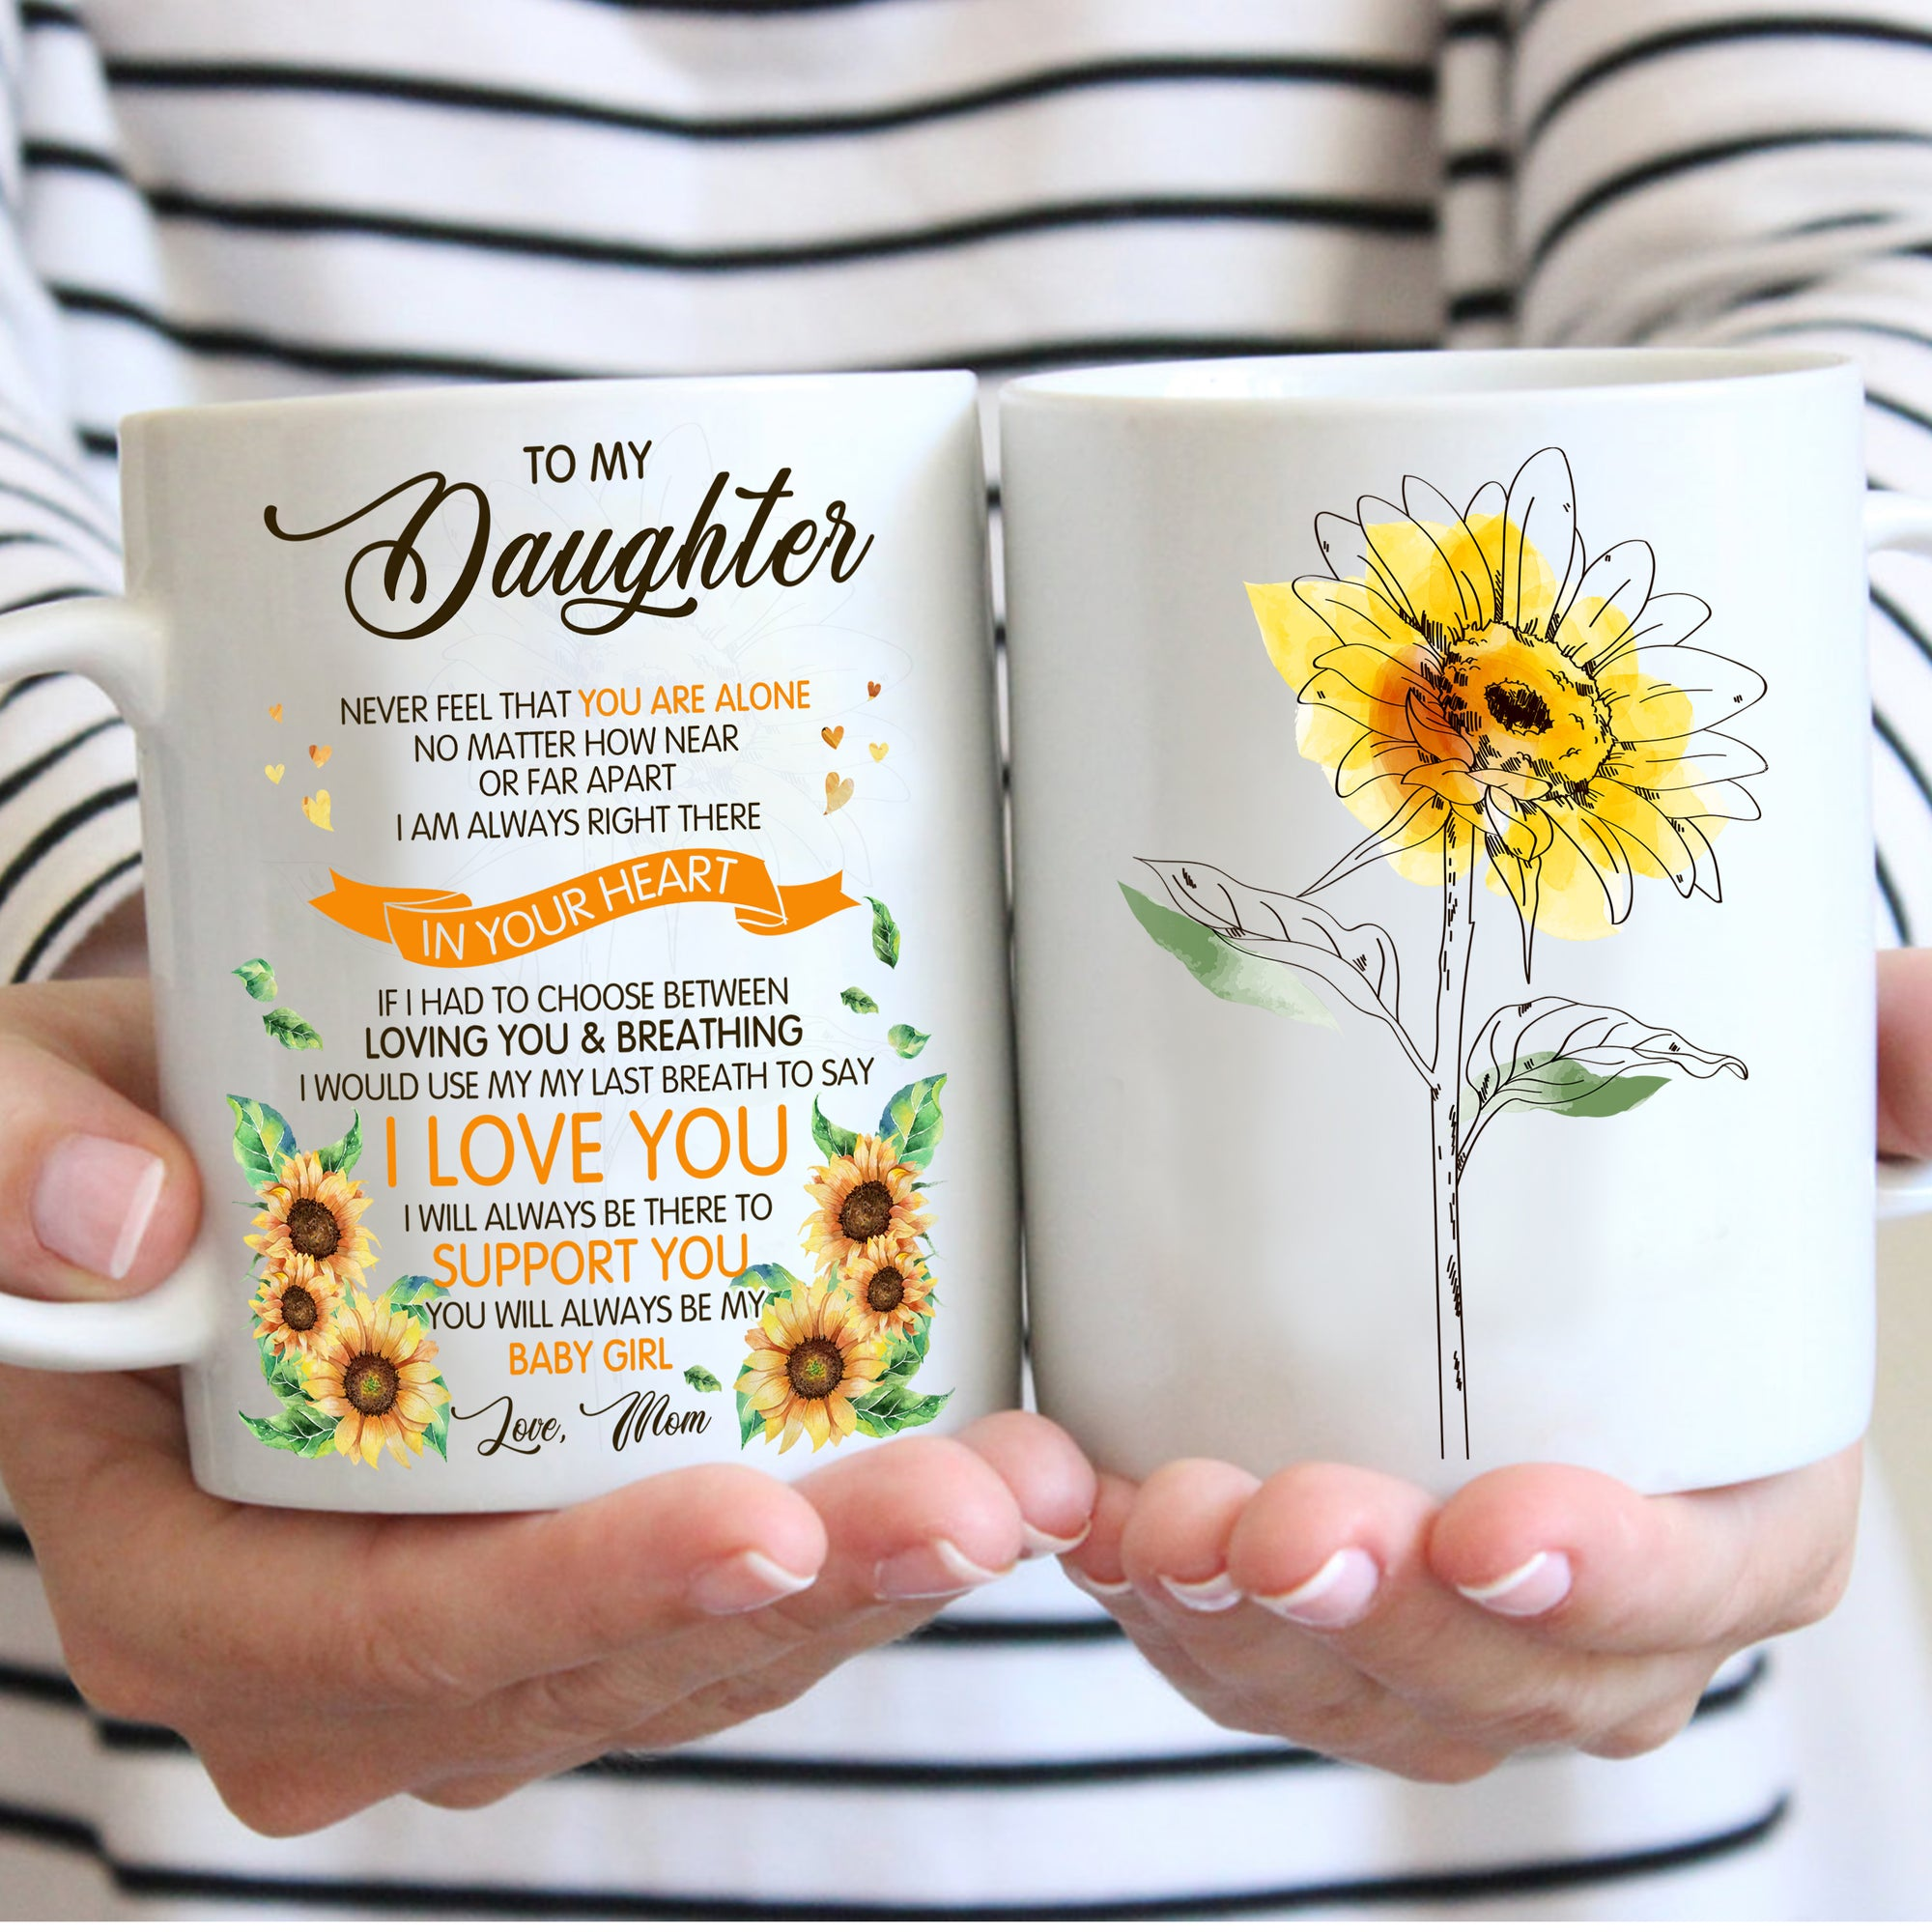 To my daughter coffee mug, sunflower mug - I am always right there in your heart - Gift for daughter from mother - Birthday Gifts - 534